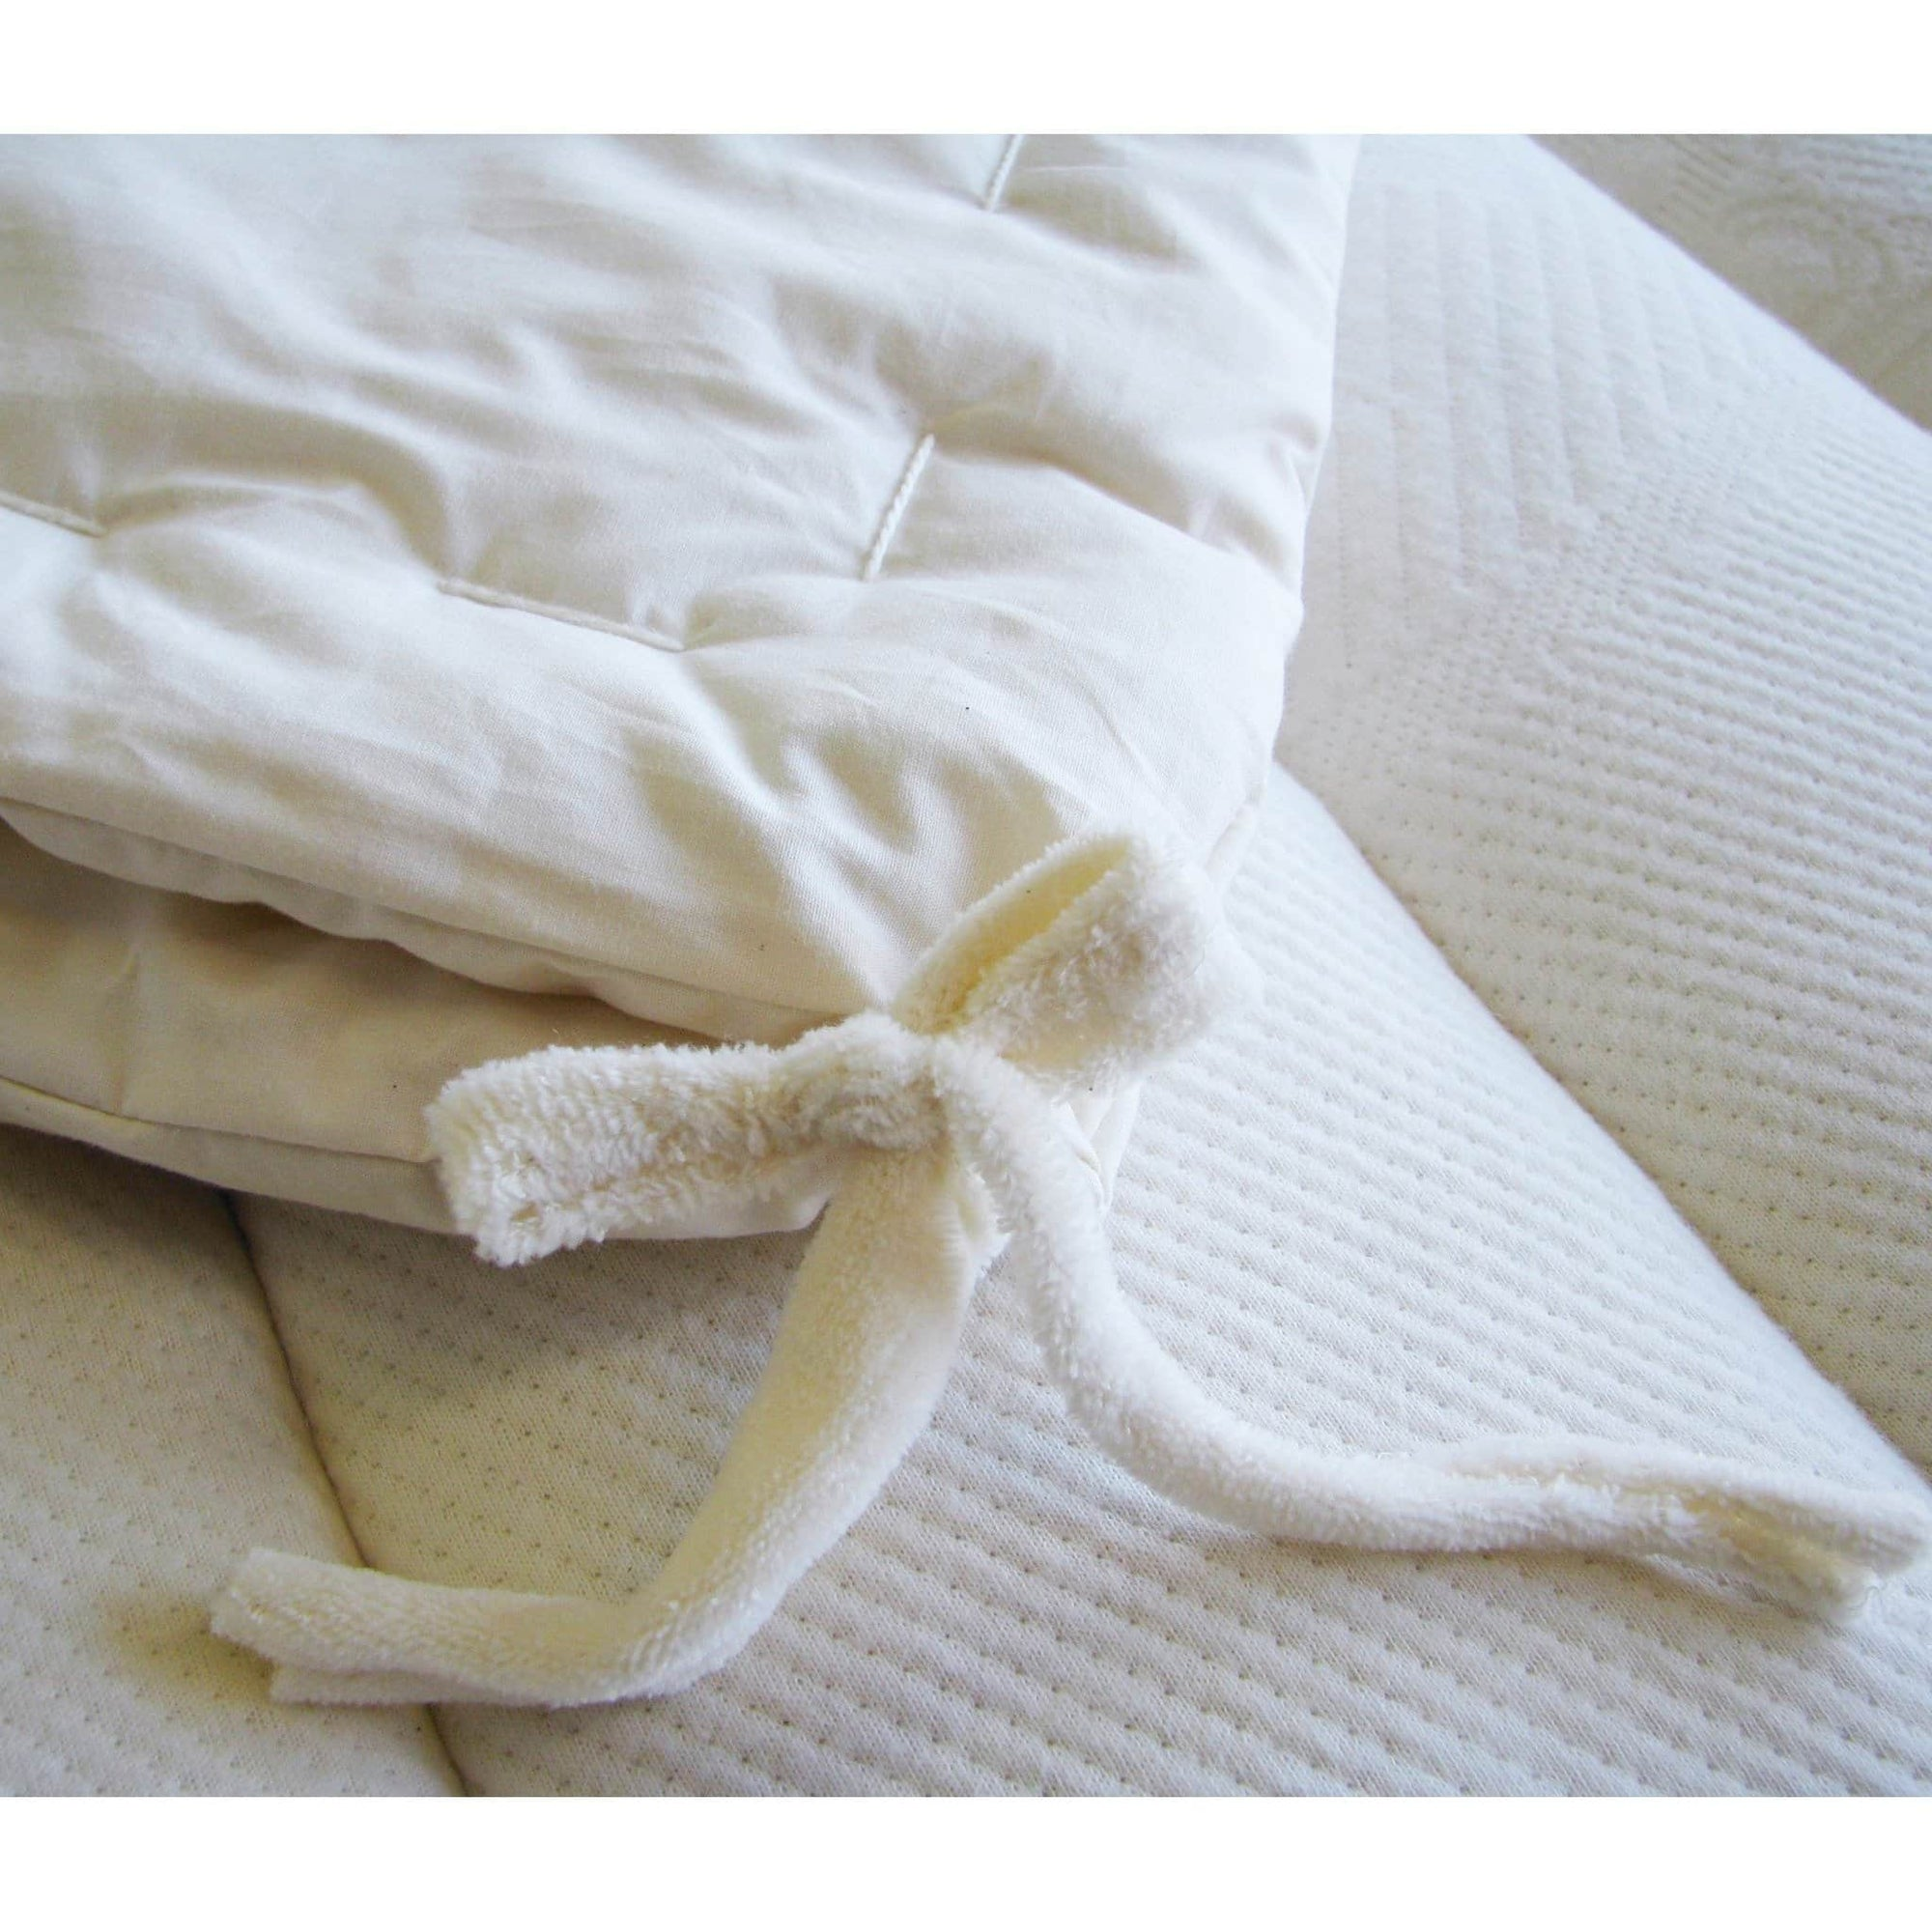 Organic All Season Wool Comforters (Separate 2 Layers) | Holy Lamb Organics-Comforters-Jack and Jill Boutique